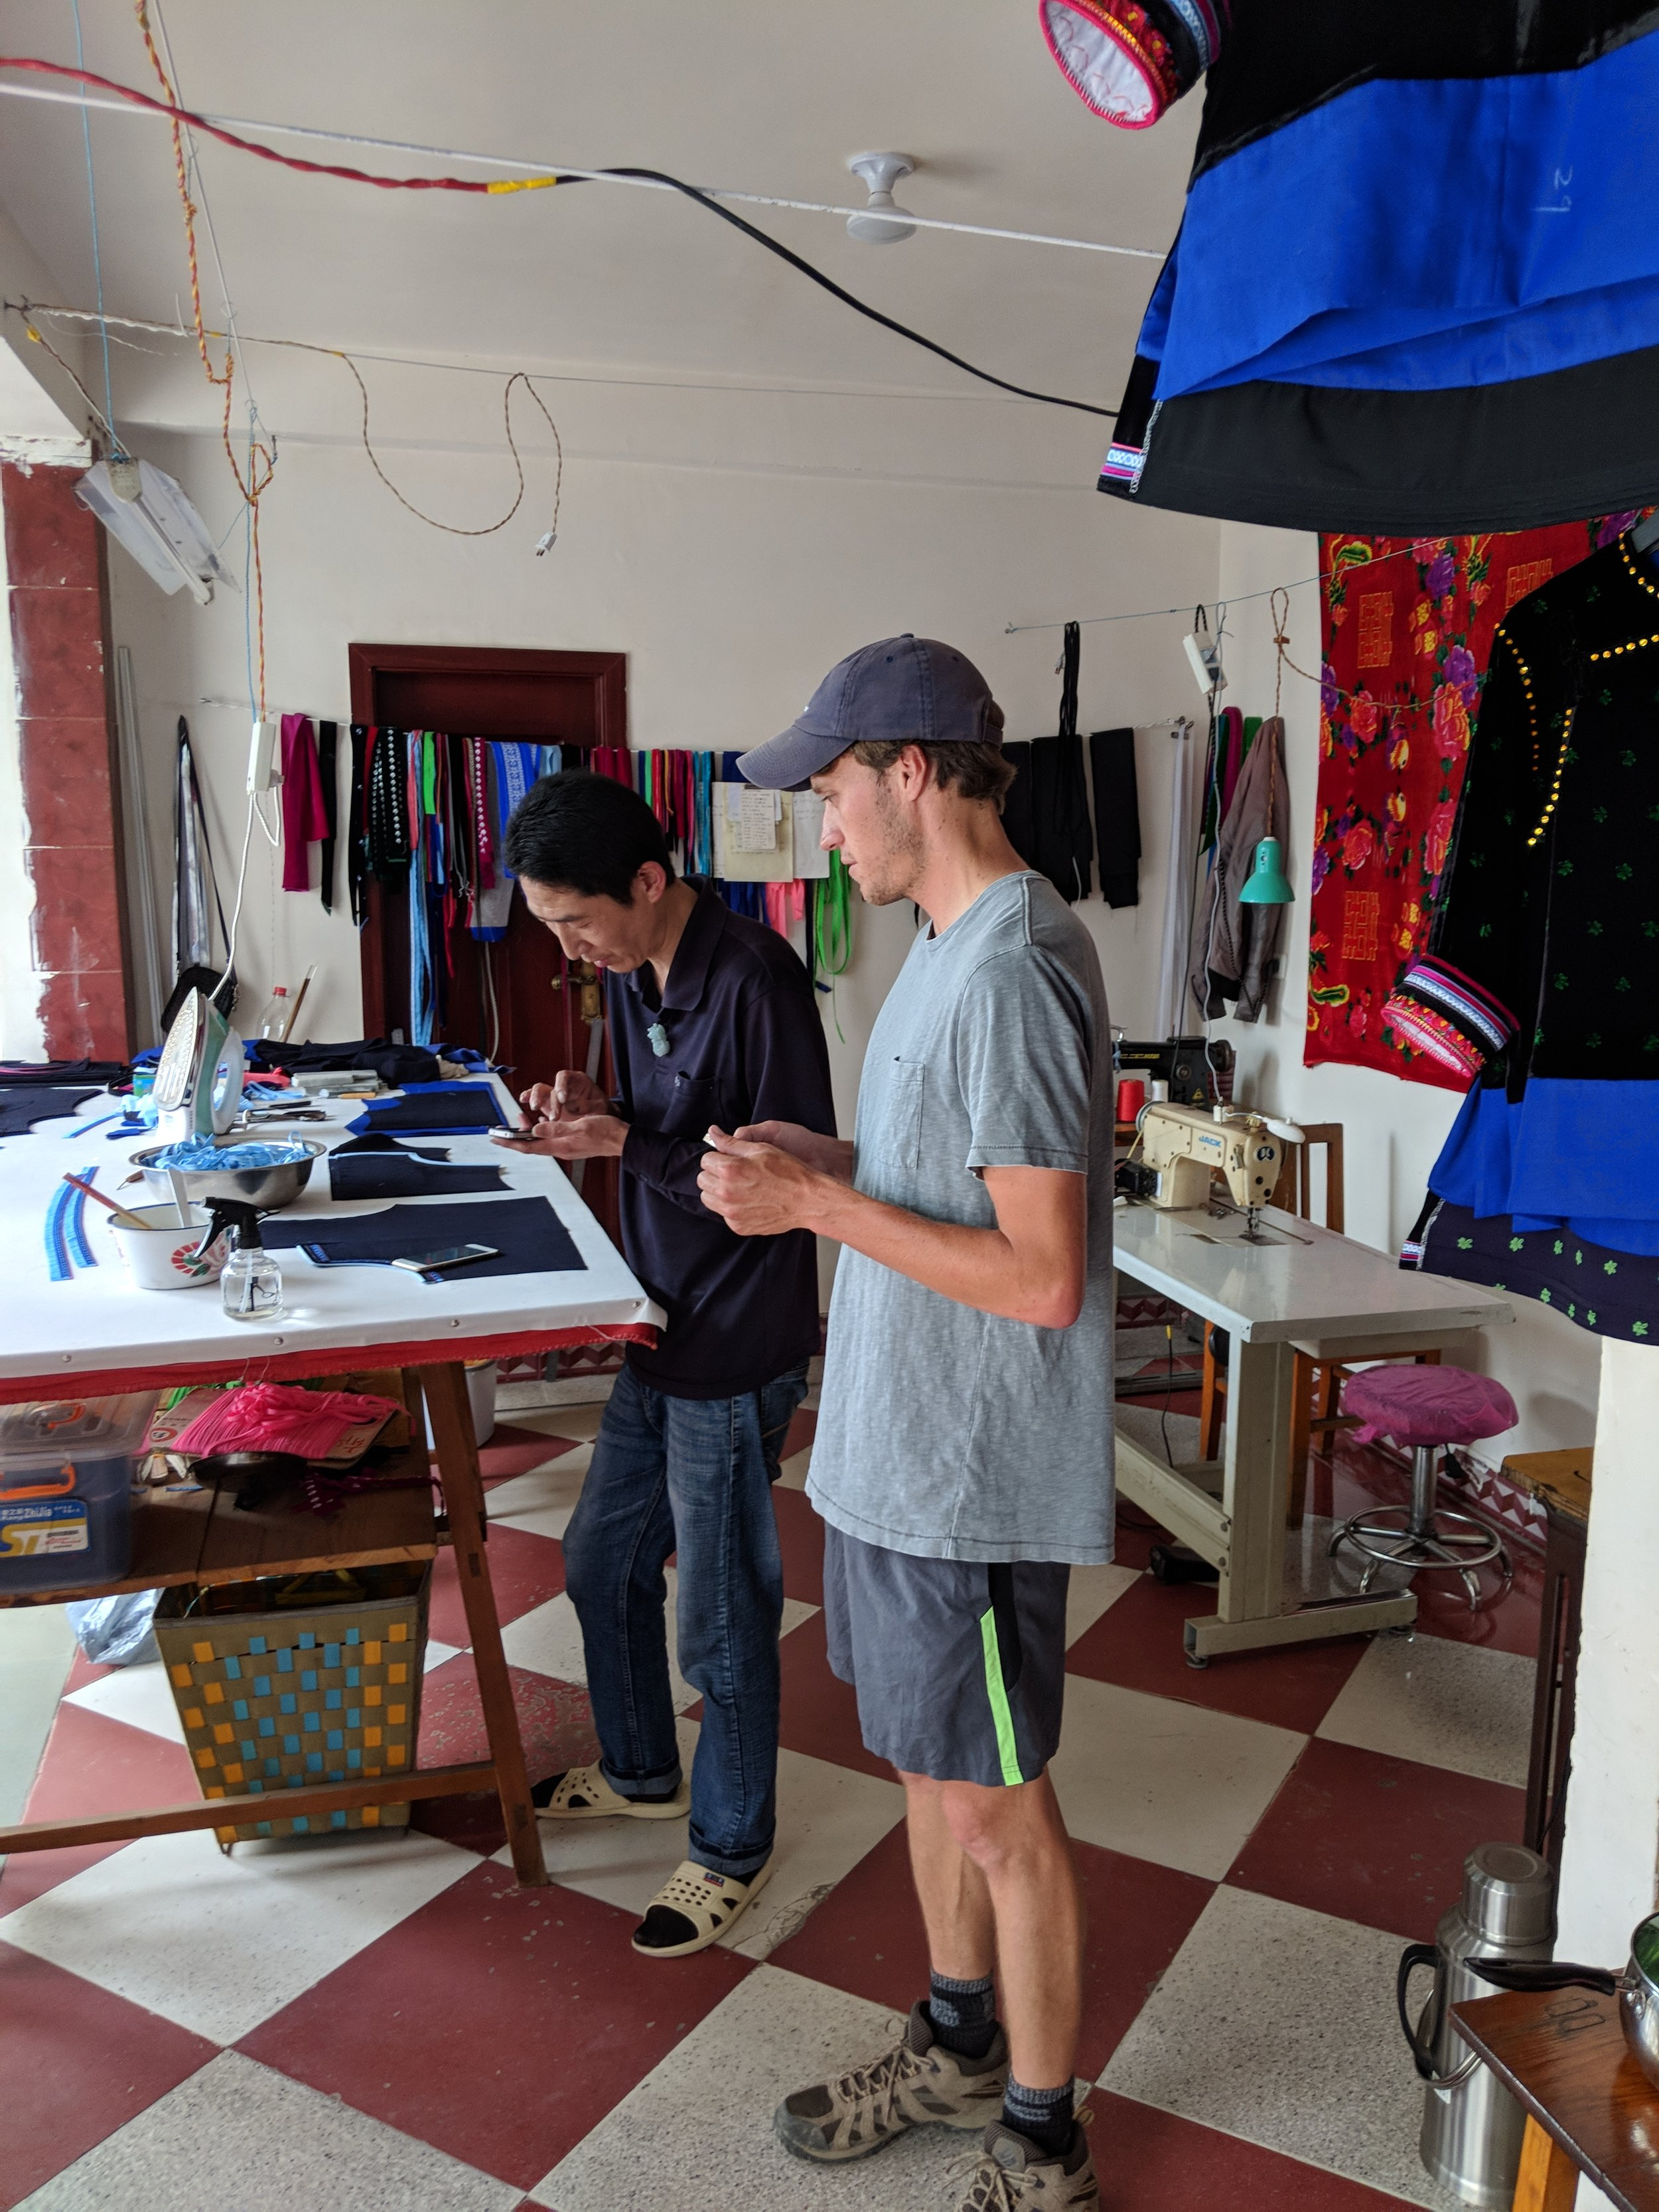 Alex asked for directions at a shop selling hand-made Bai clothing, which many locals still wear.